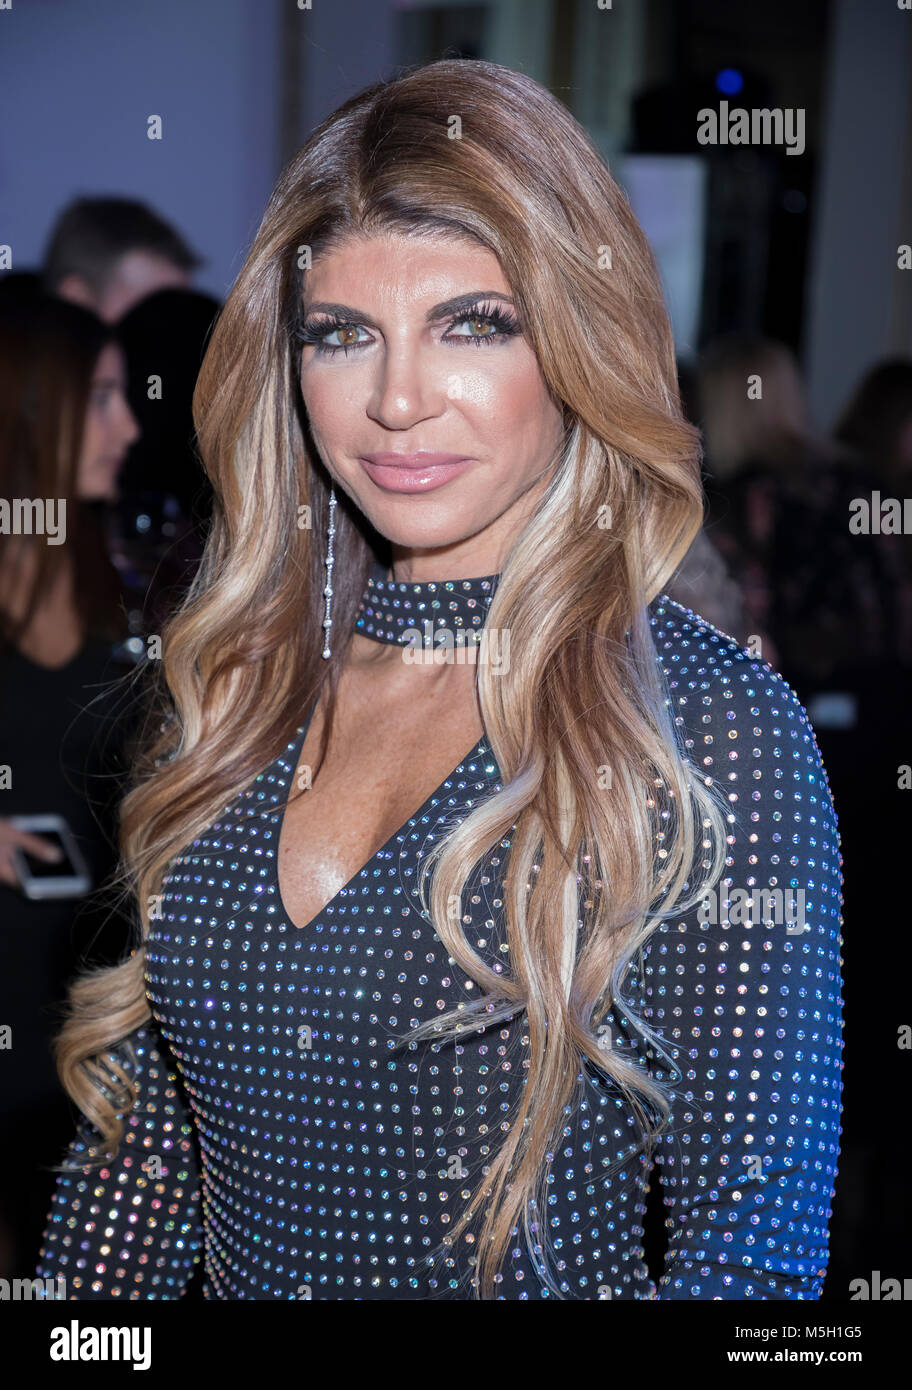 New York, USA. 22nd Feb, 2018. Teresa Giudice attends WE TV Launches Bridezillas Museum Of Natural Hysteria at Arena, - Stock Image